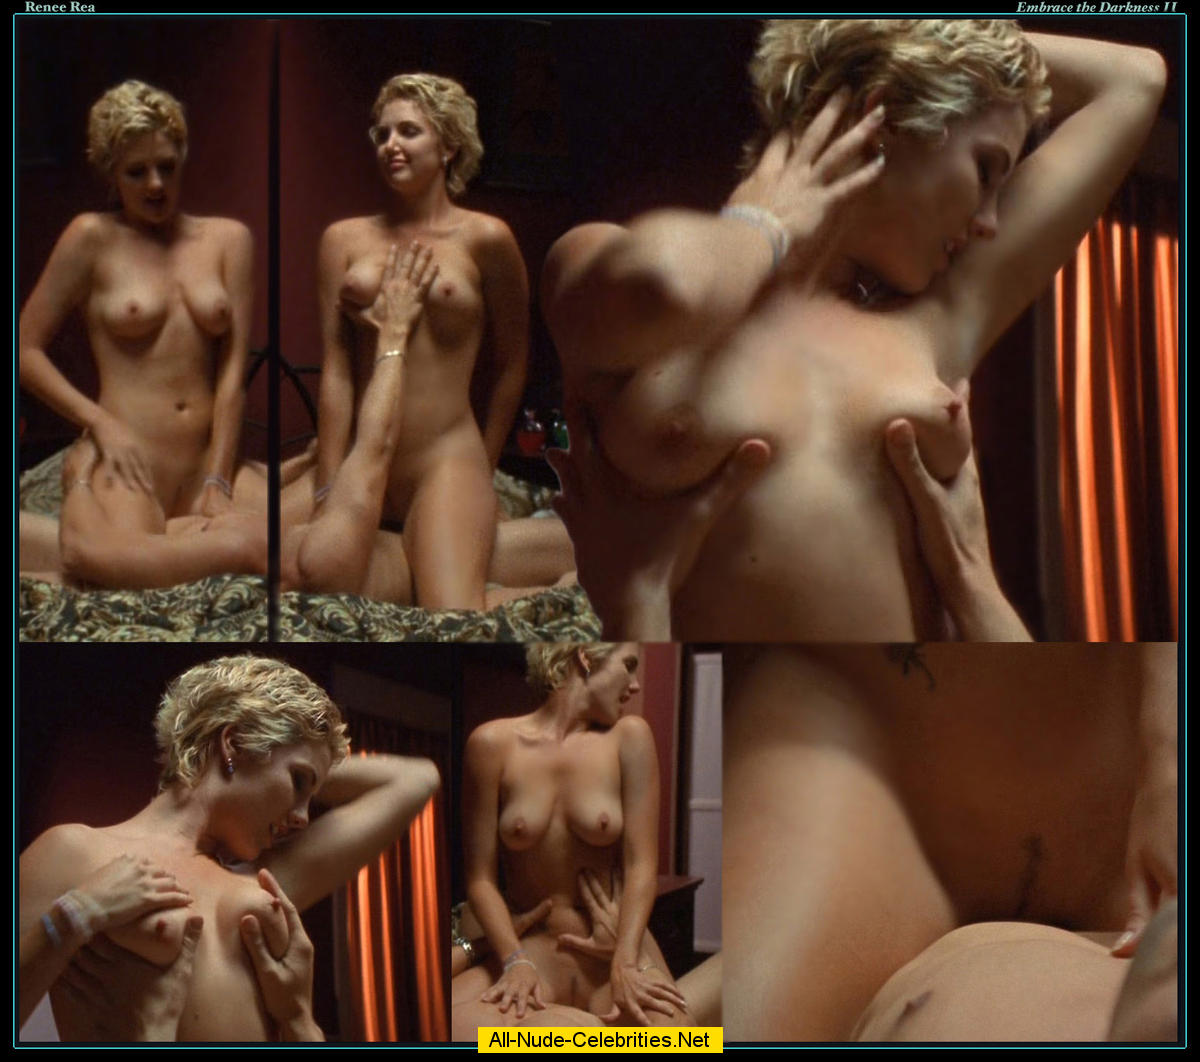 Renee Rea fully nude sex scenes from Embrace the Darkness